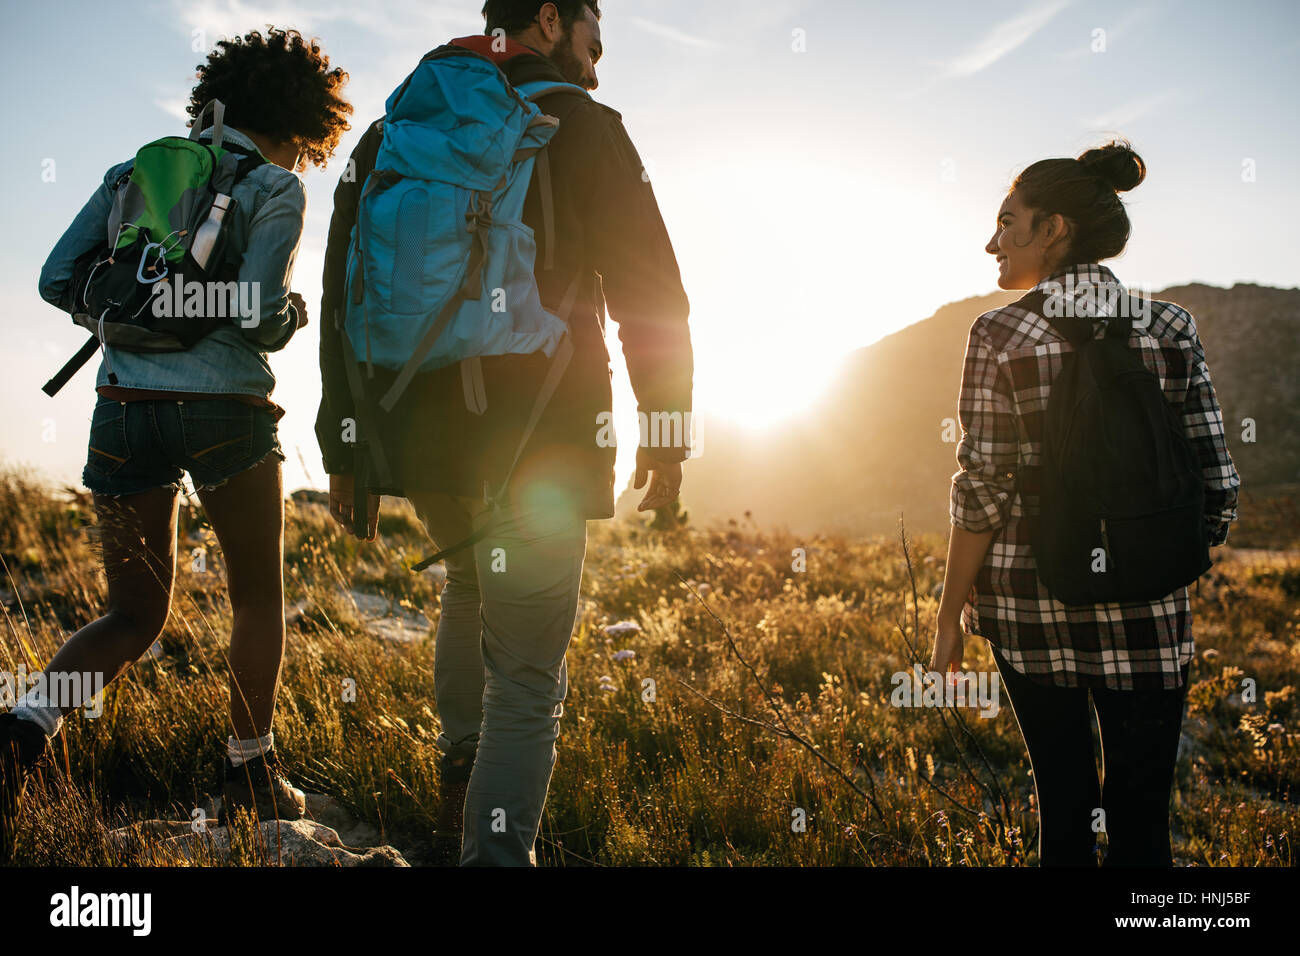 Rear view shot of young friends in countryside during summer holiday hiking. Group of hikers walking in the nature. - Stock Image